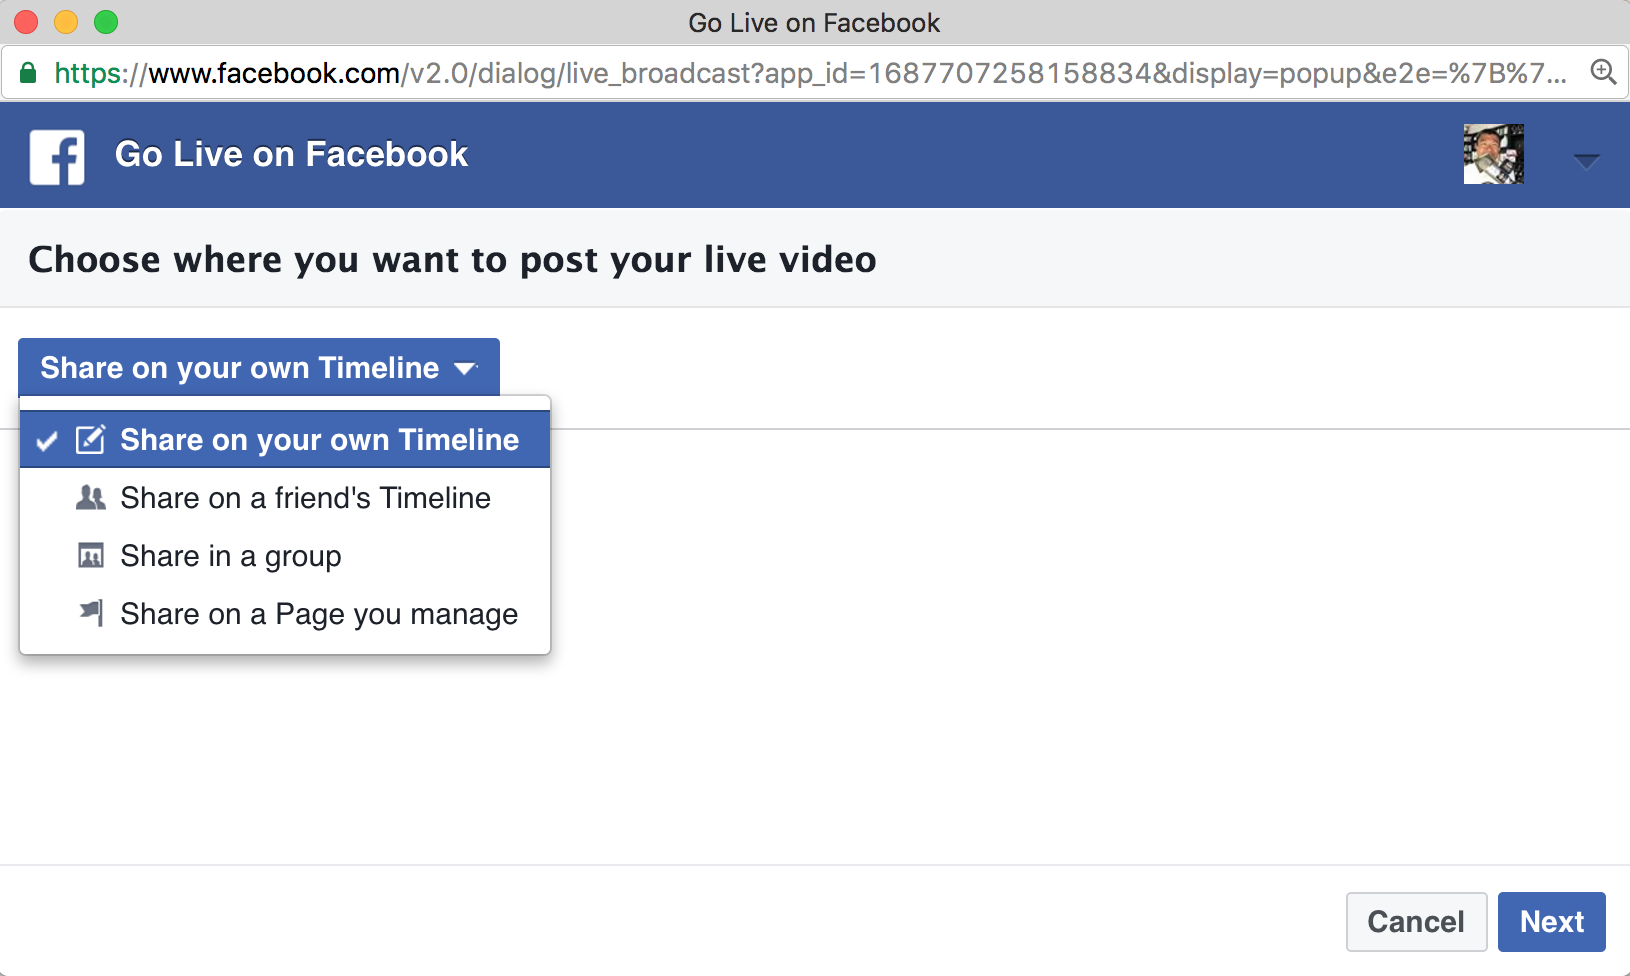 Choose where you want your Facebook Live stream to appear